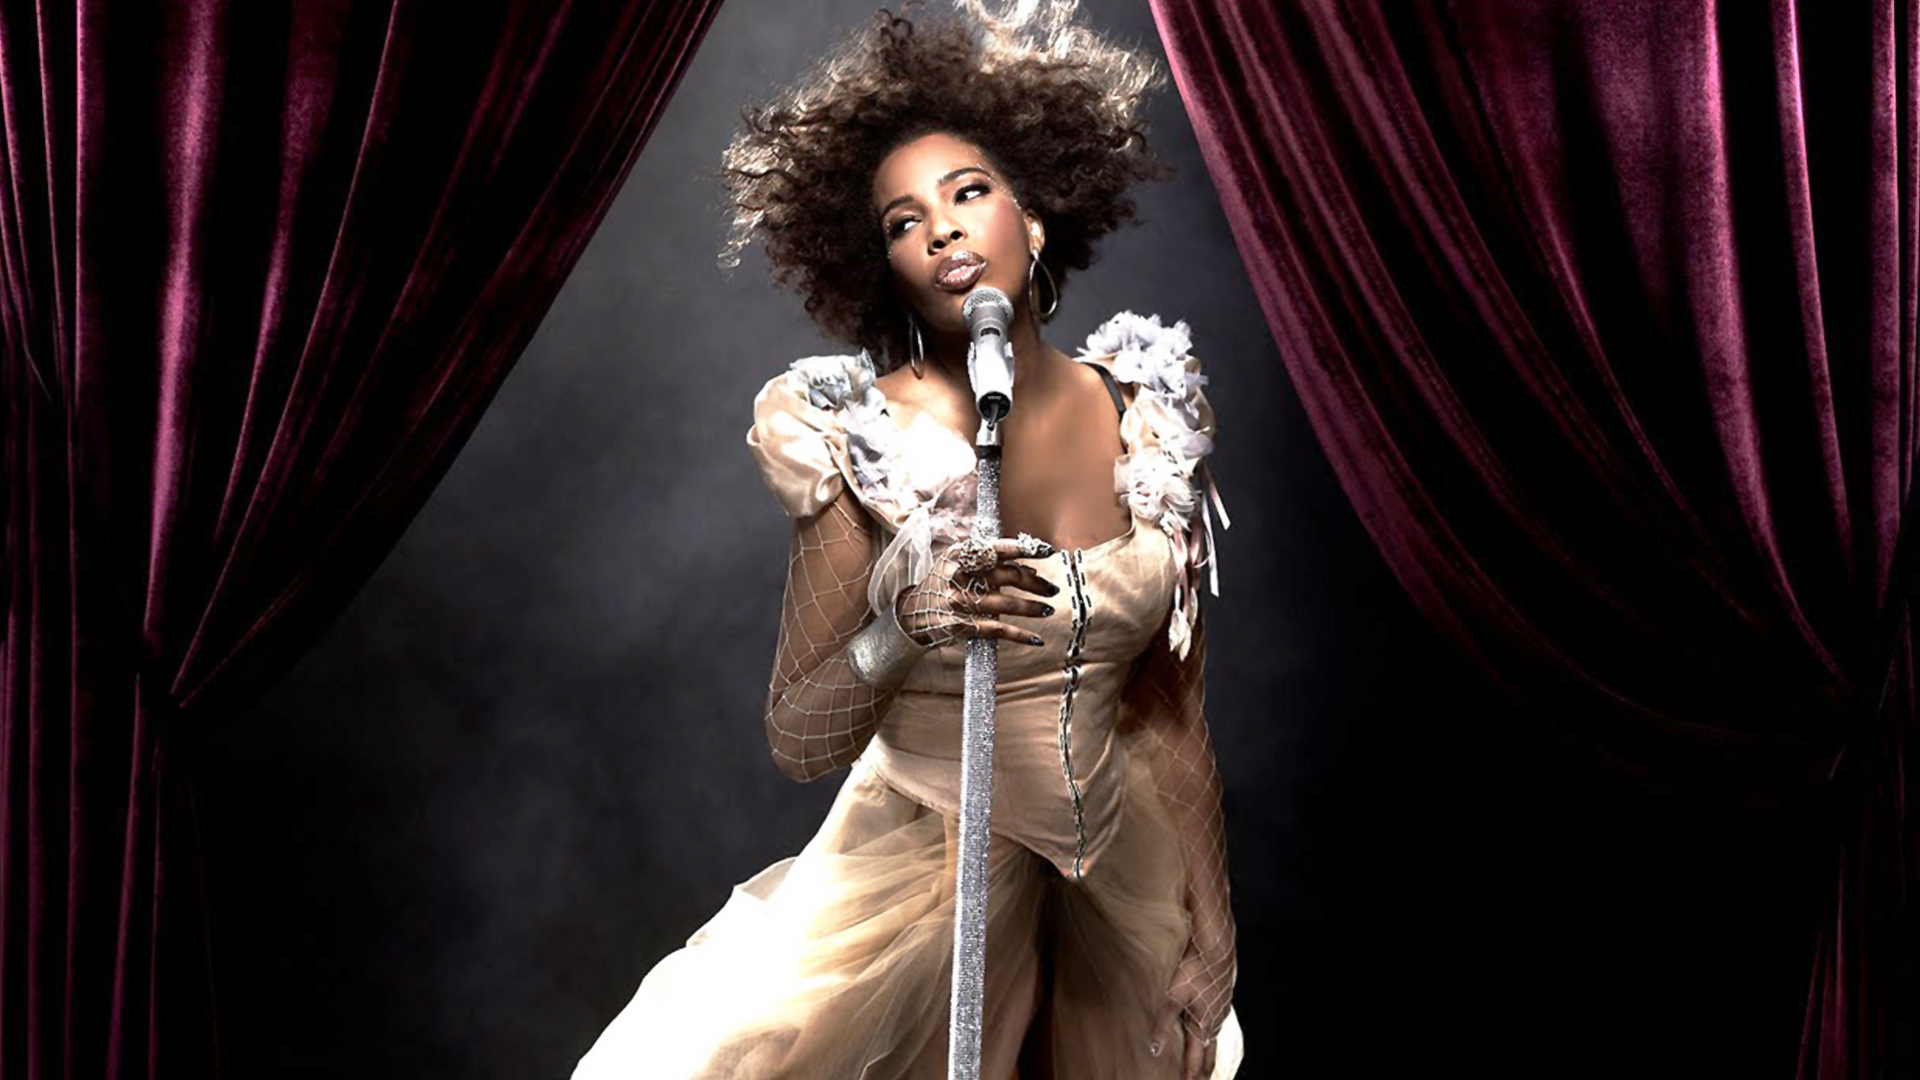 Pictures Of Macy Gray